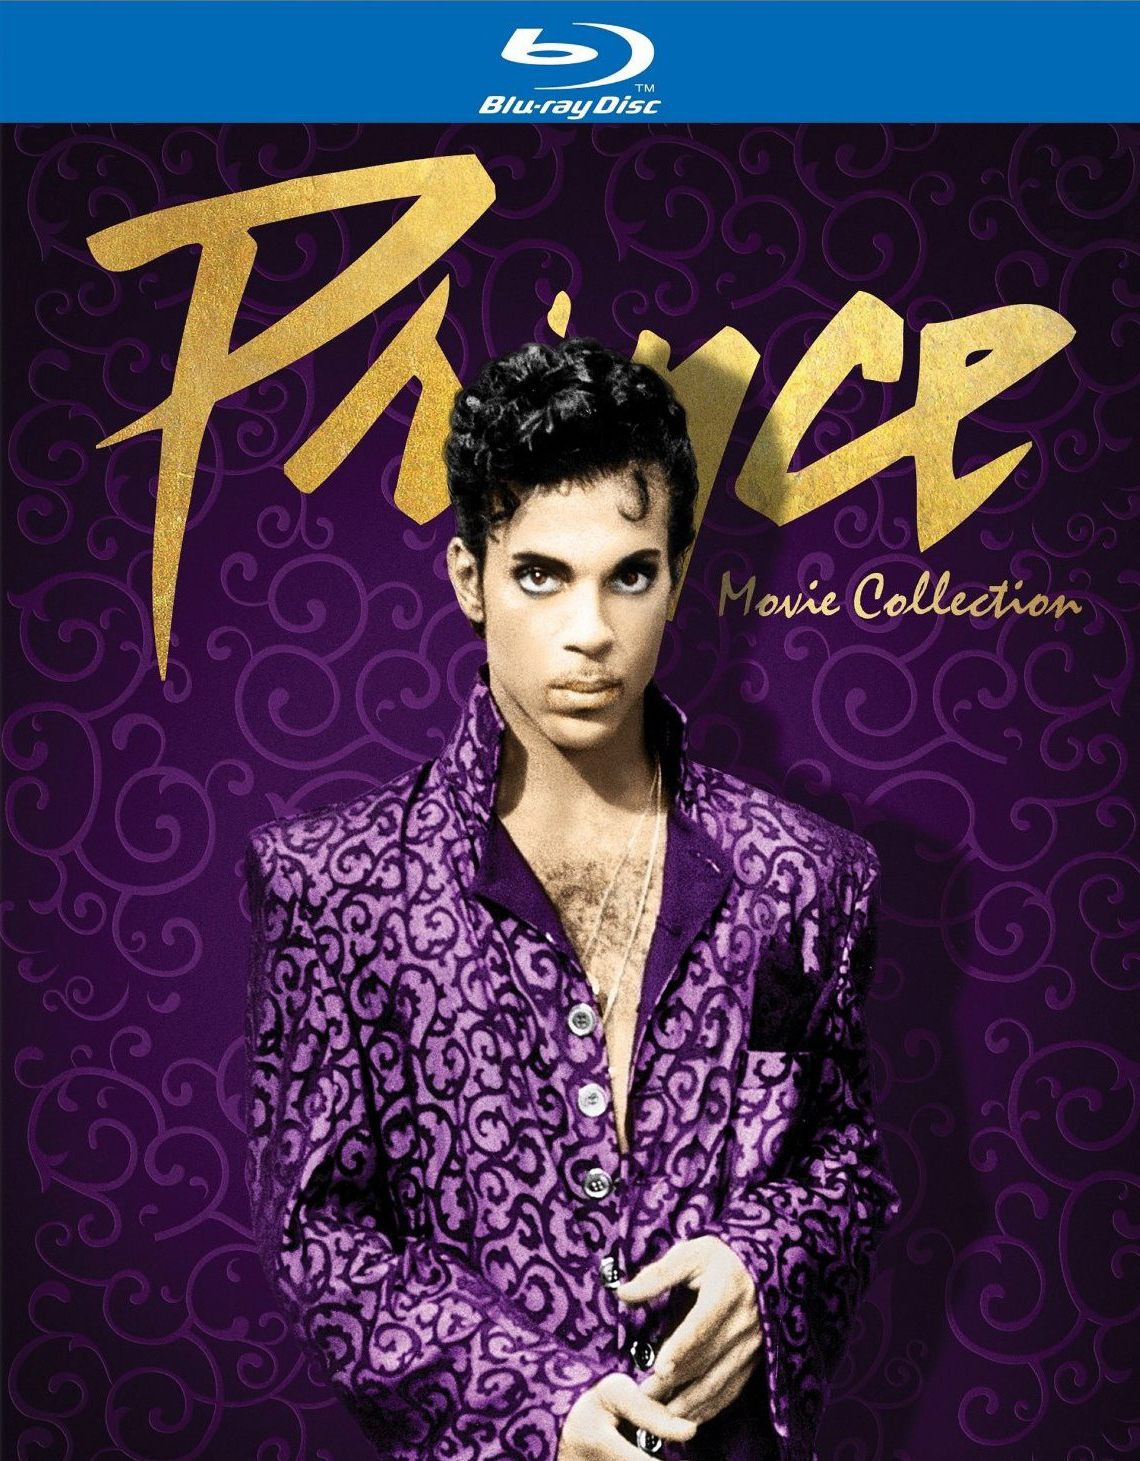 WB to release all Prince movies in Bluray boxset